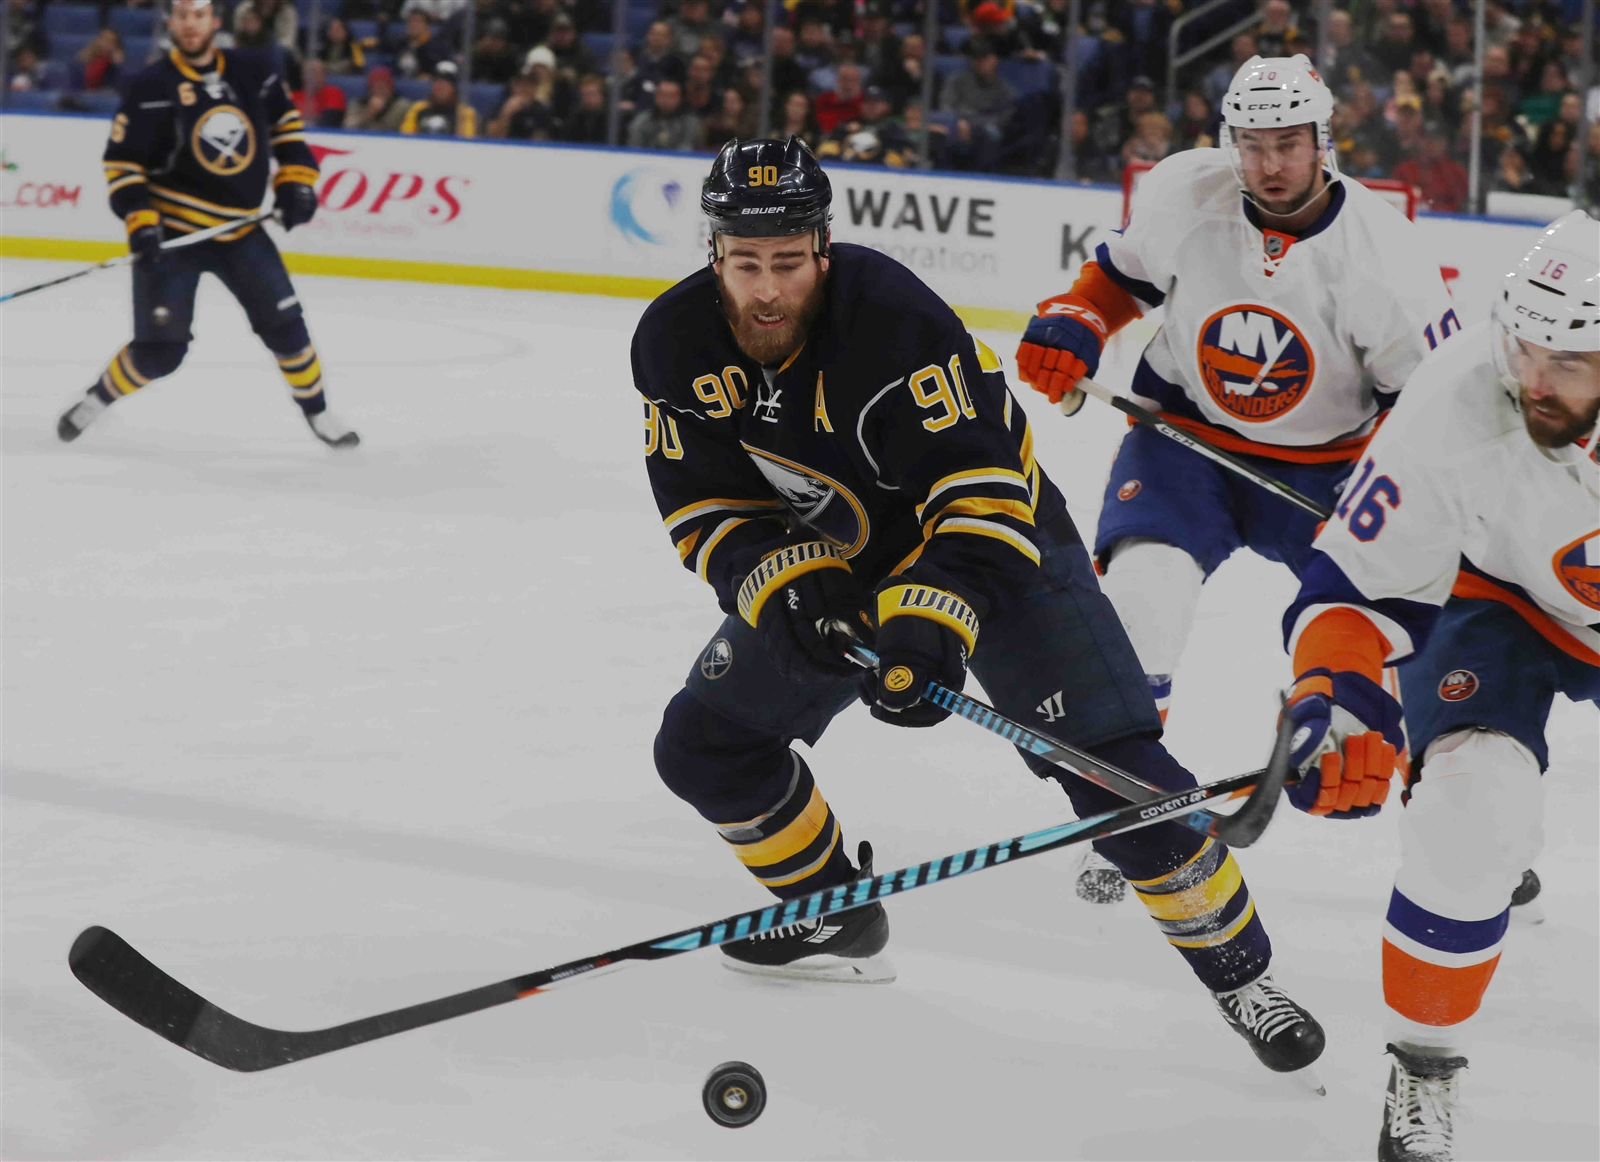 Buffalo Sabres center Ryan O'Reilly (90) battles New York Islanders left wing Andrew Ladd (16) for the puck.